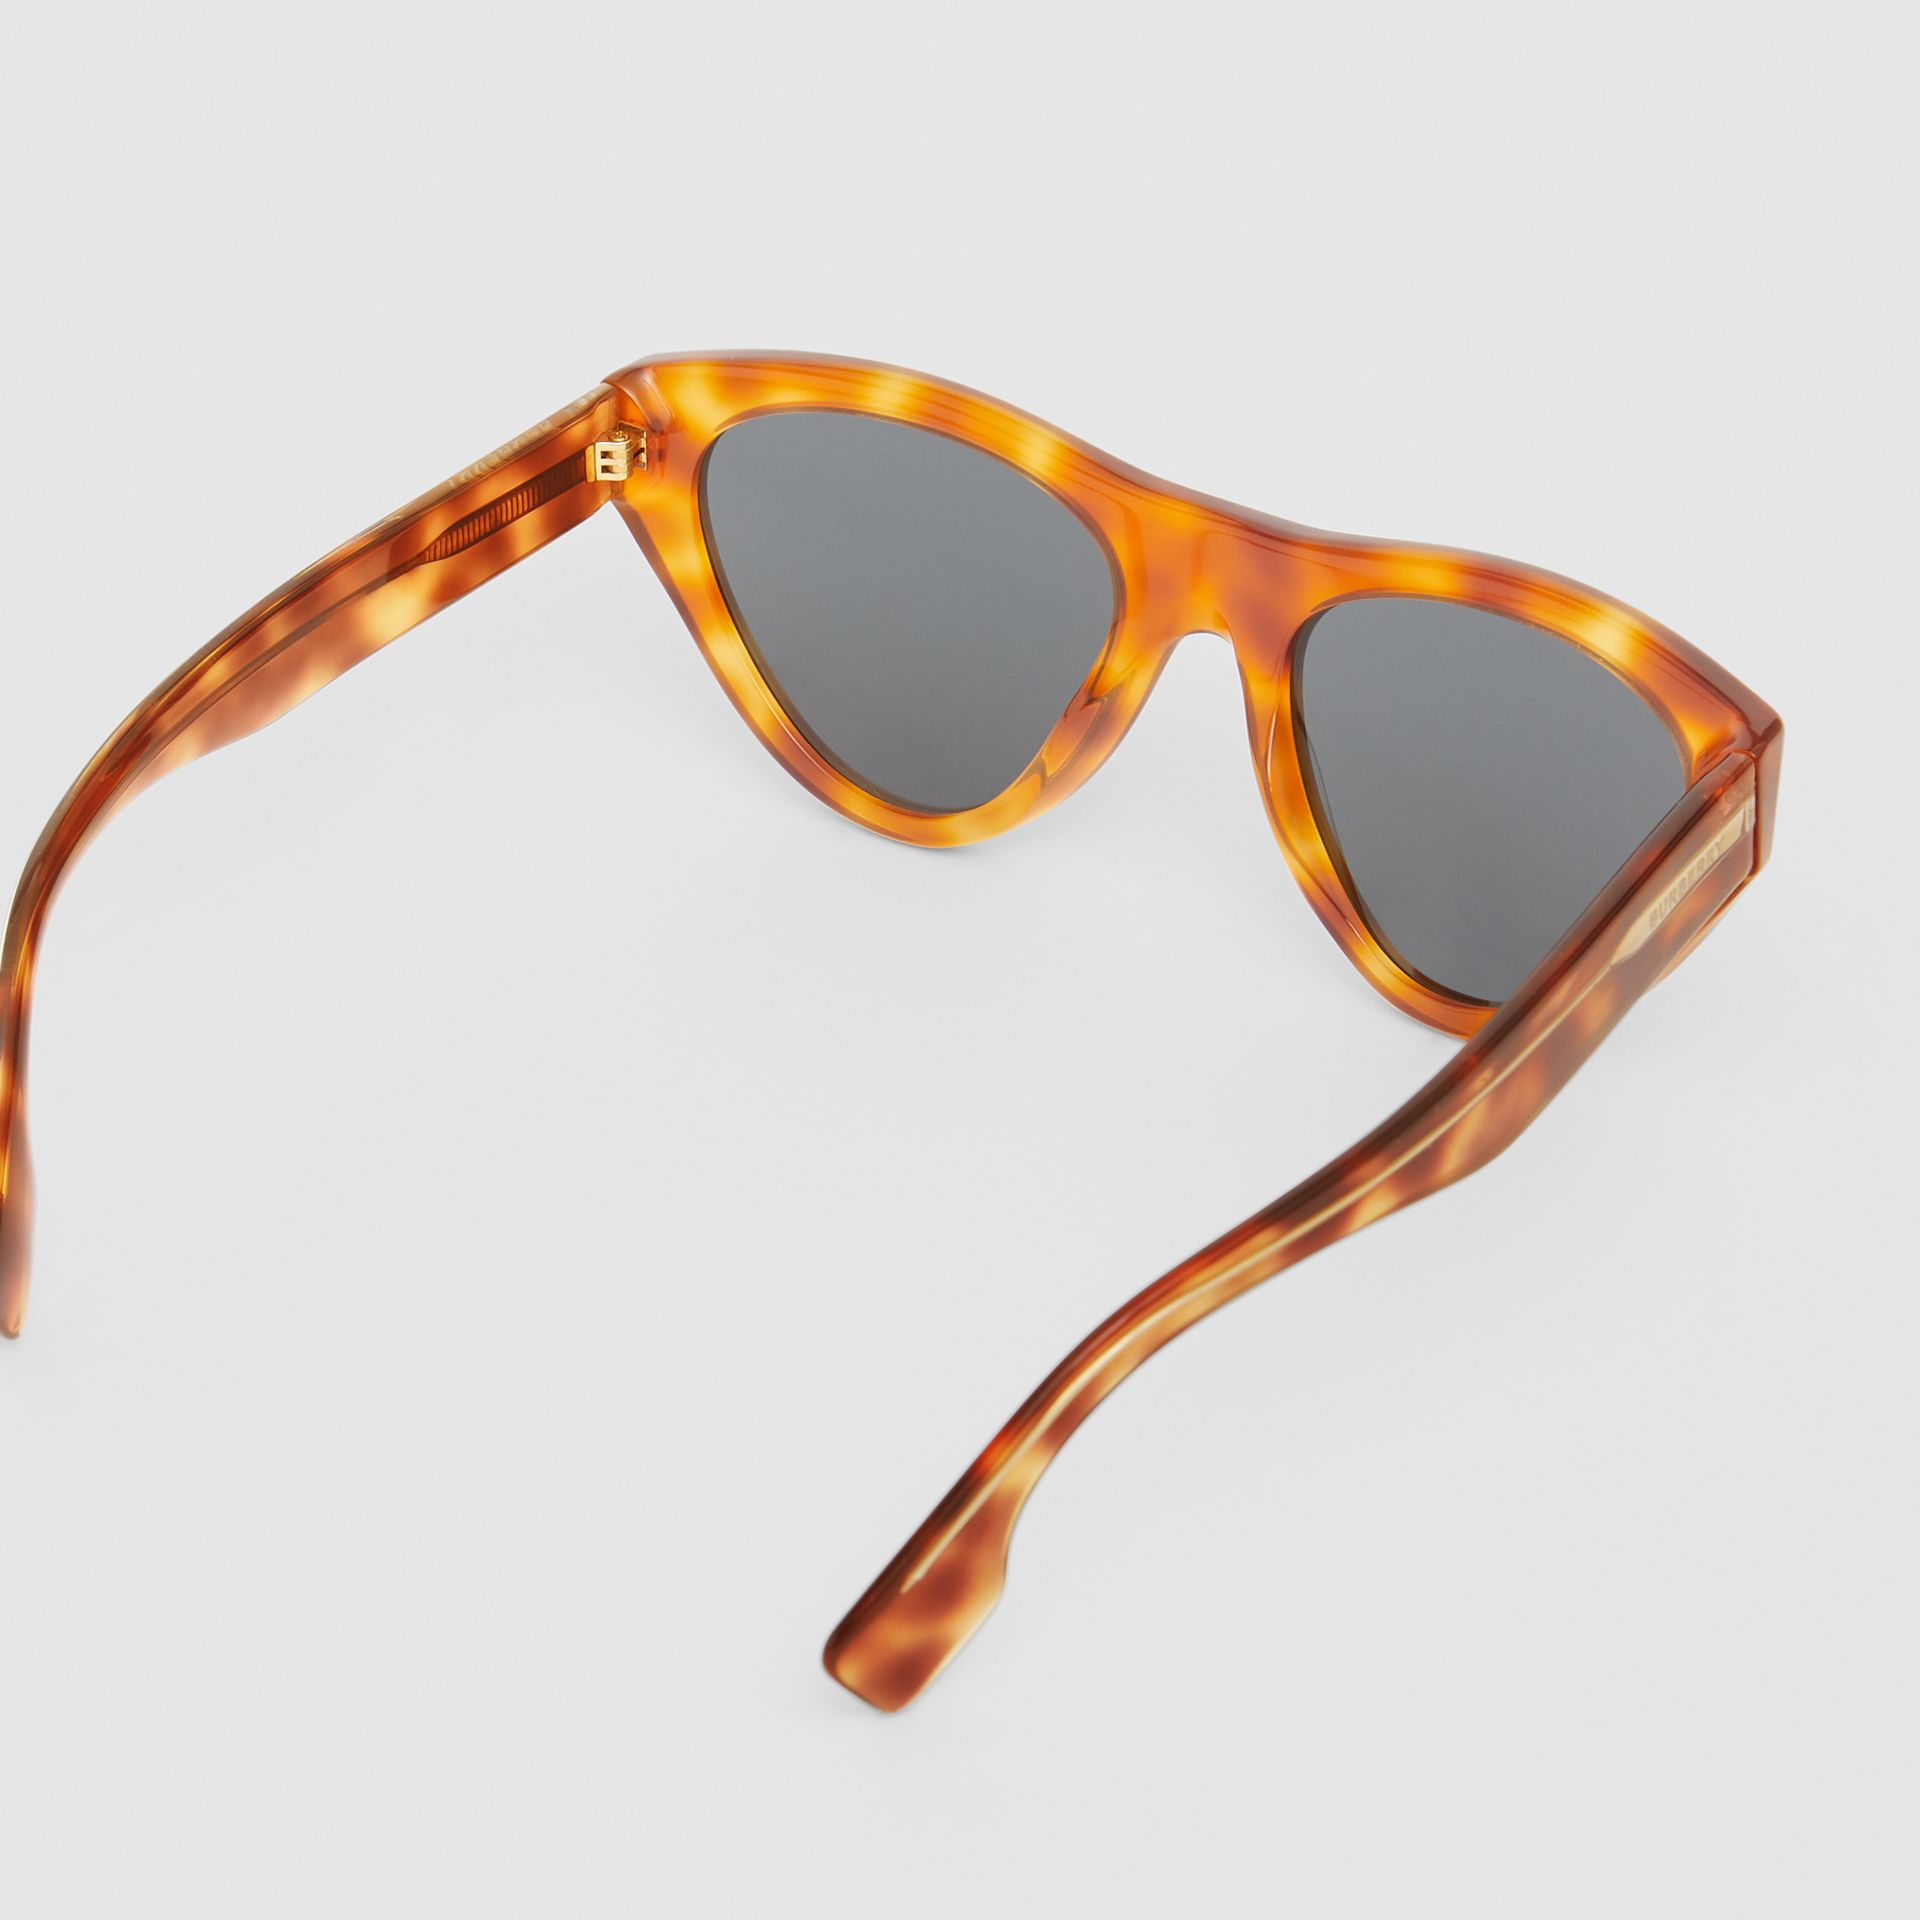 Triangular Frame Sunglasses in Tortoise Amber - Women | Burberry Australia - gallery image 3